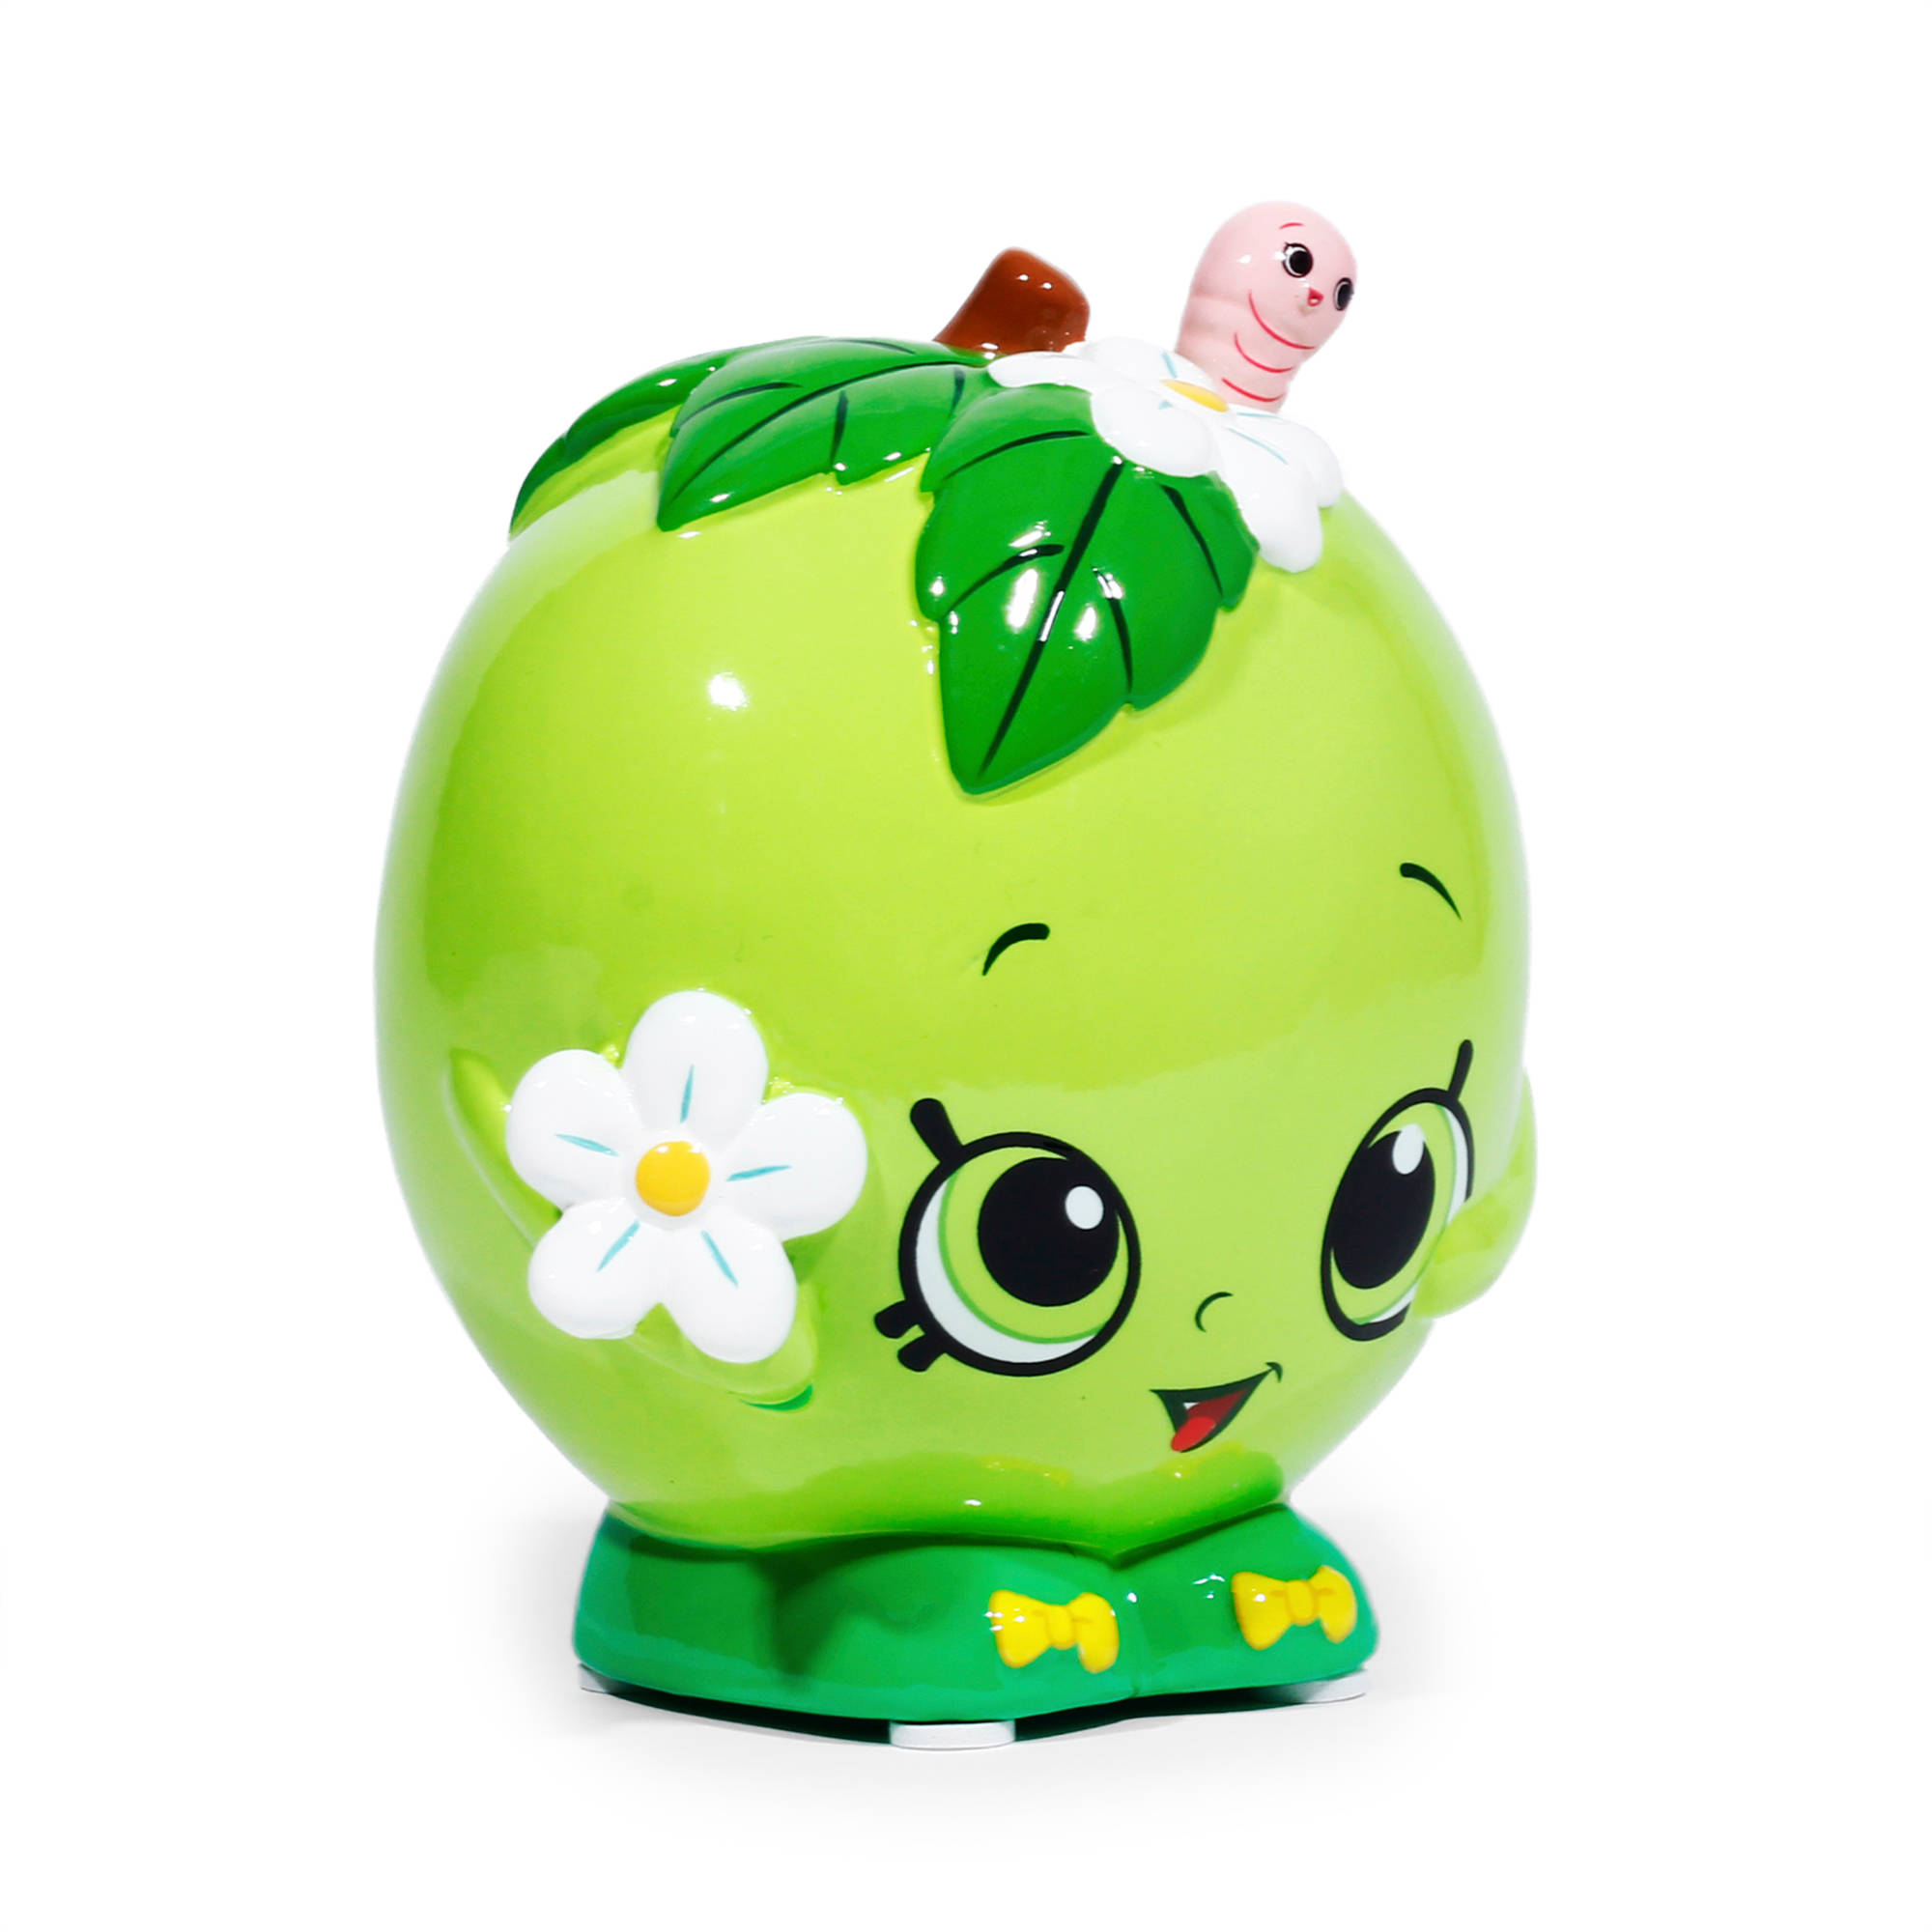 Shopkins Apple Blossom Bank With Molded Apple Body